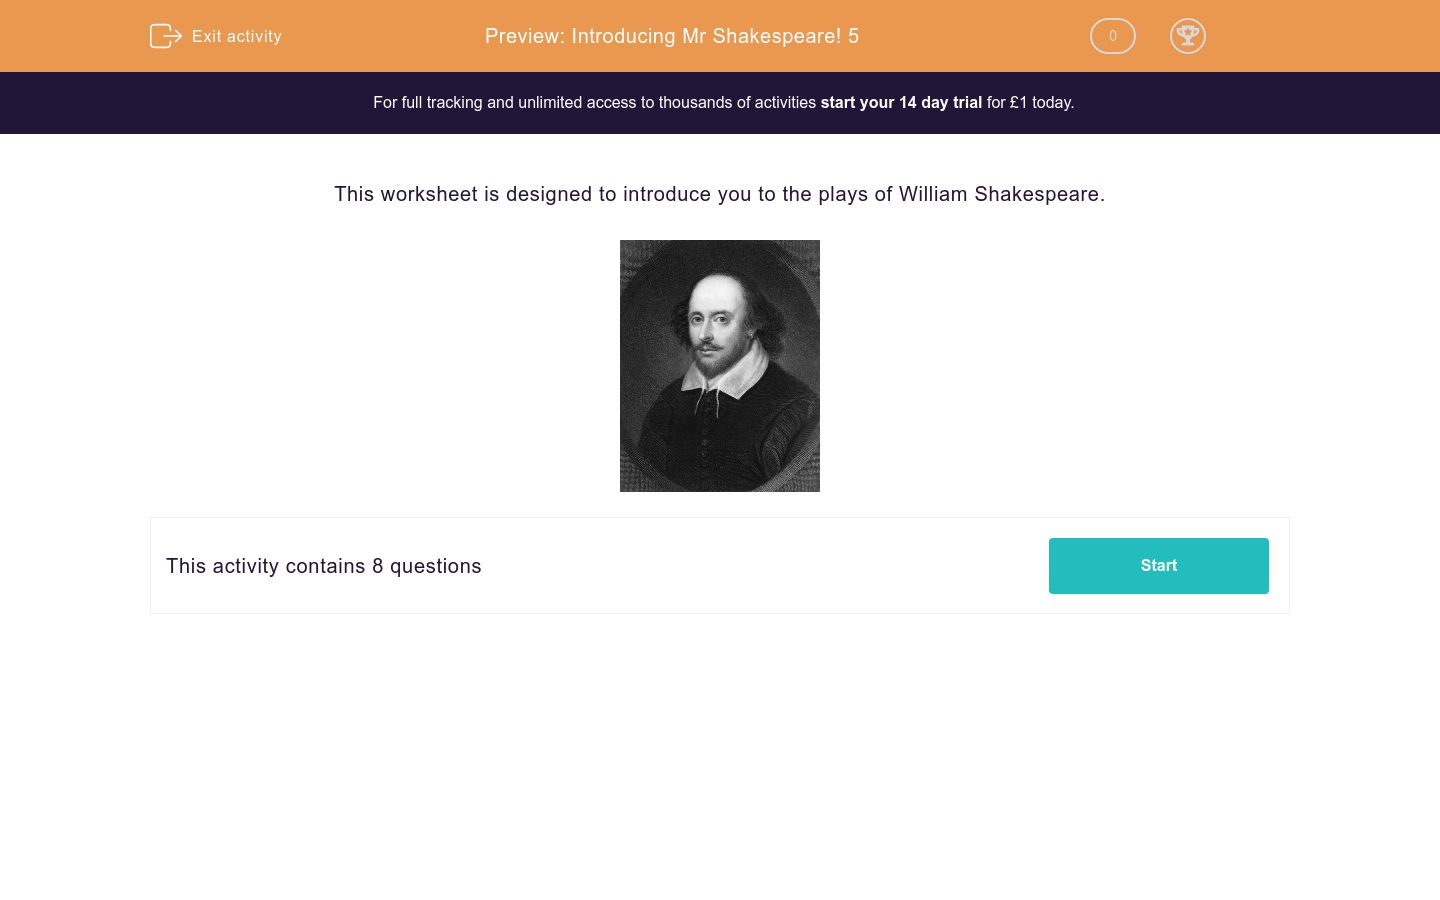 'Introducing Mr Shakespeare! 5' worksheet